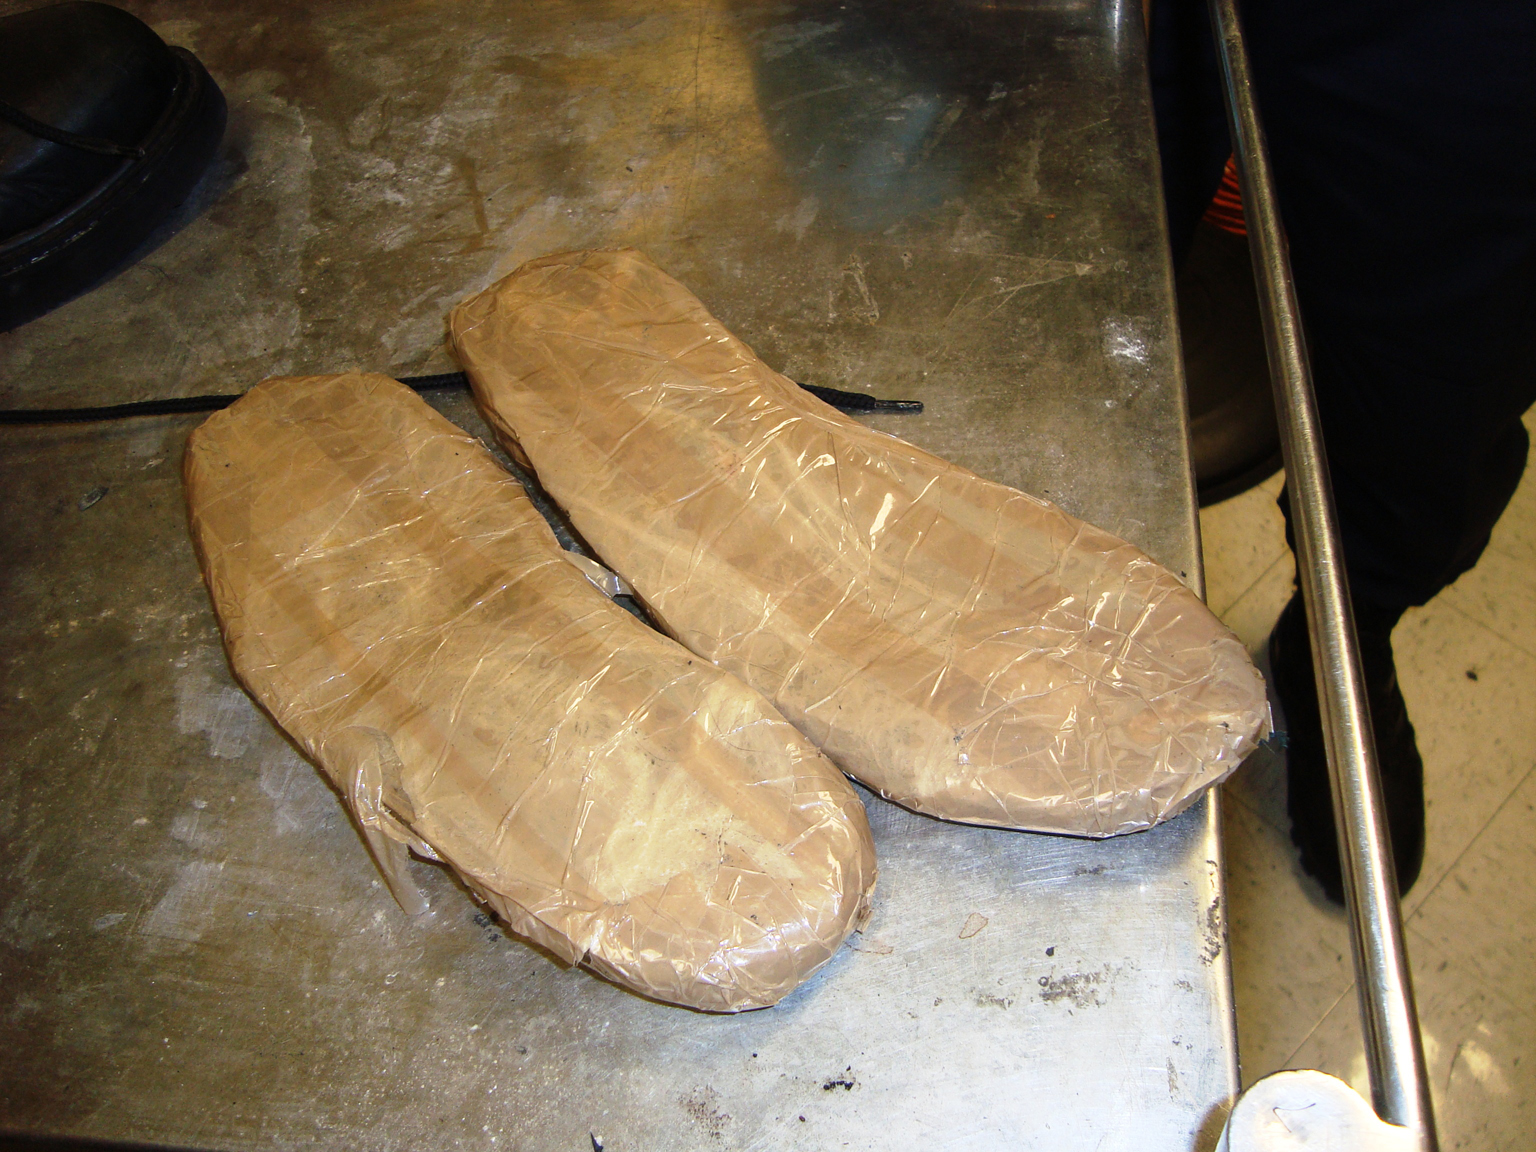 heroin smuggled in soles of boots